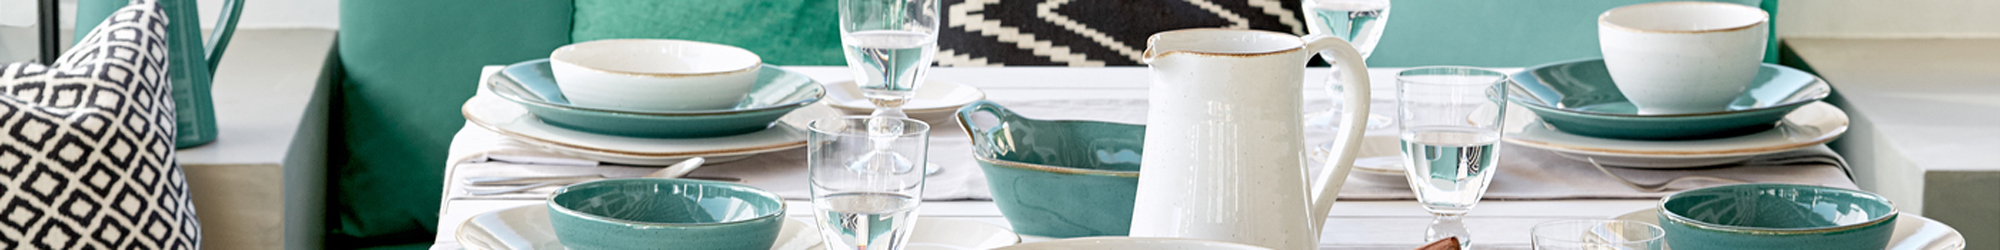 Casafina Sardegna Dinnerware Collection